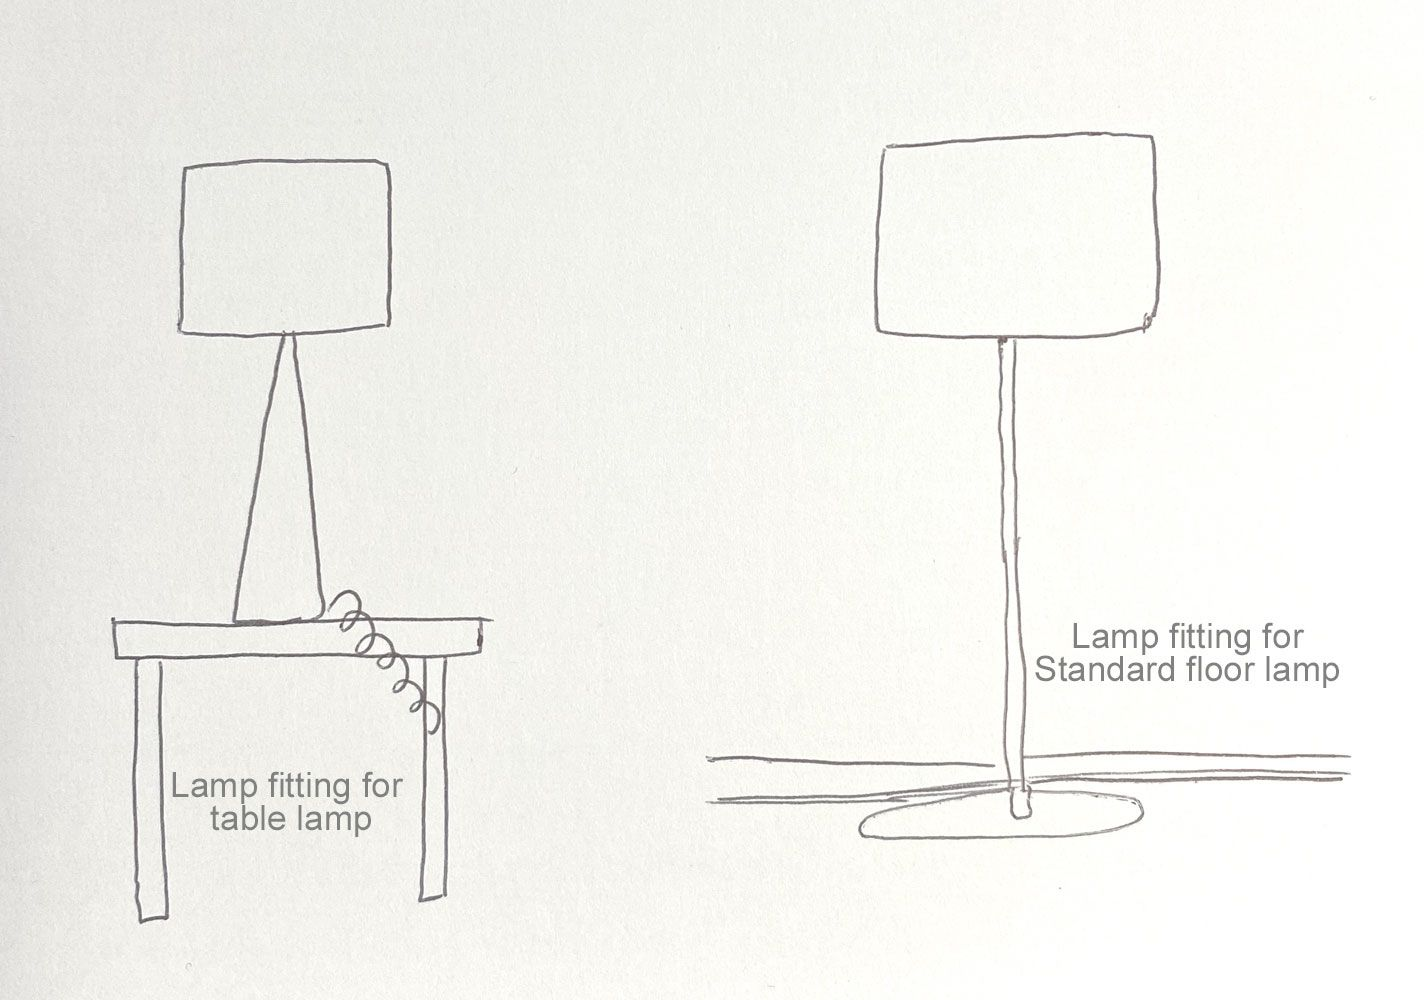 Lam fitting for table or standard floor  lamp